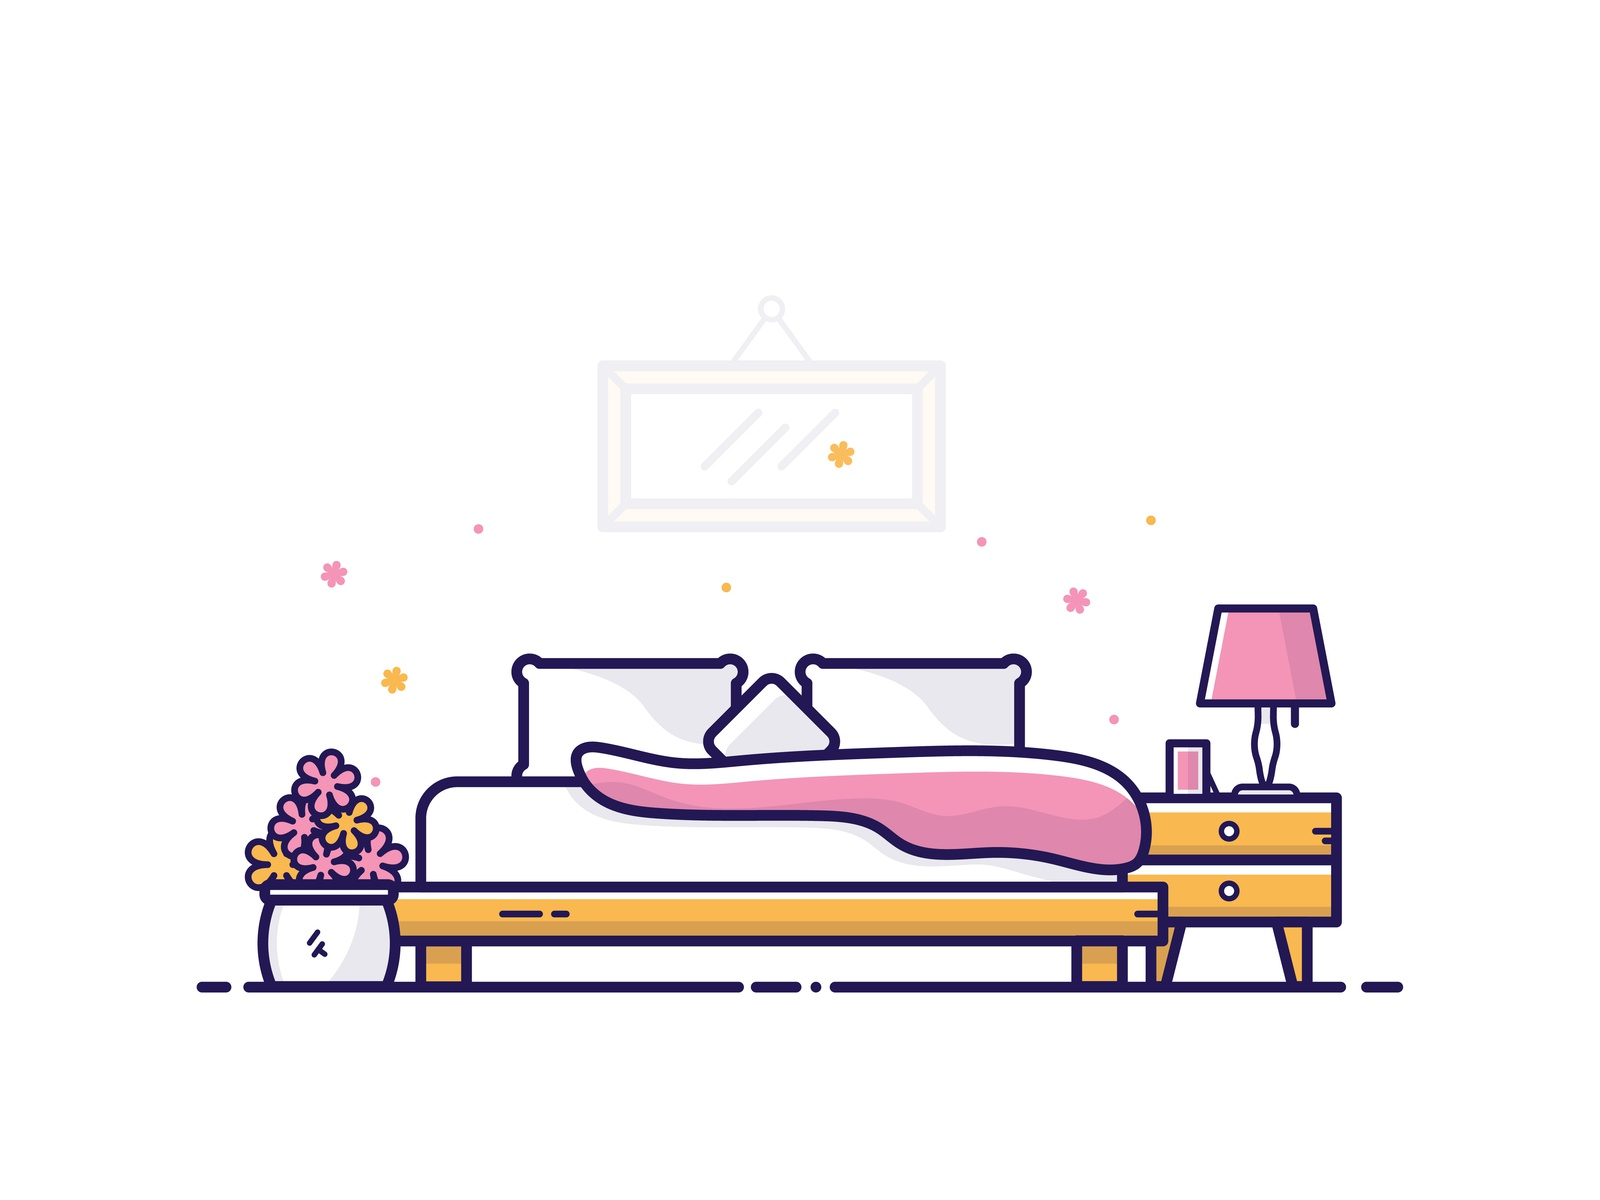 Bedroom Set By Dom Designs On Dribbble